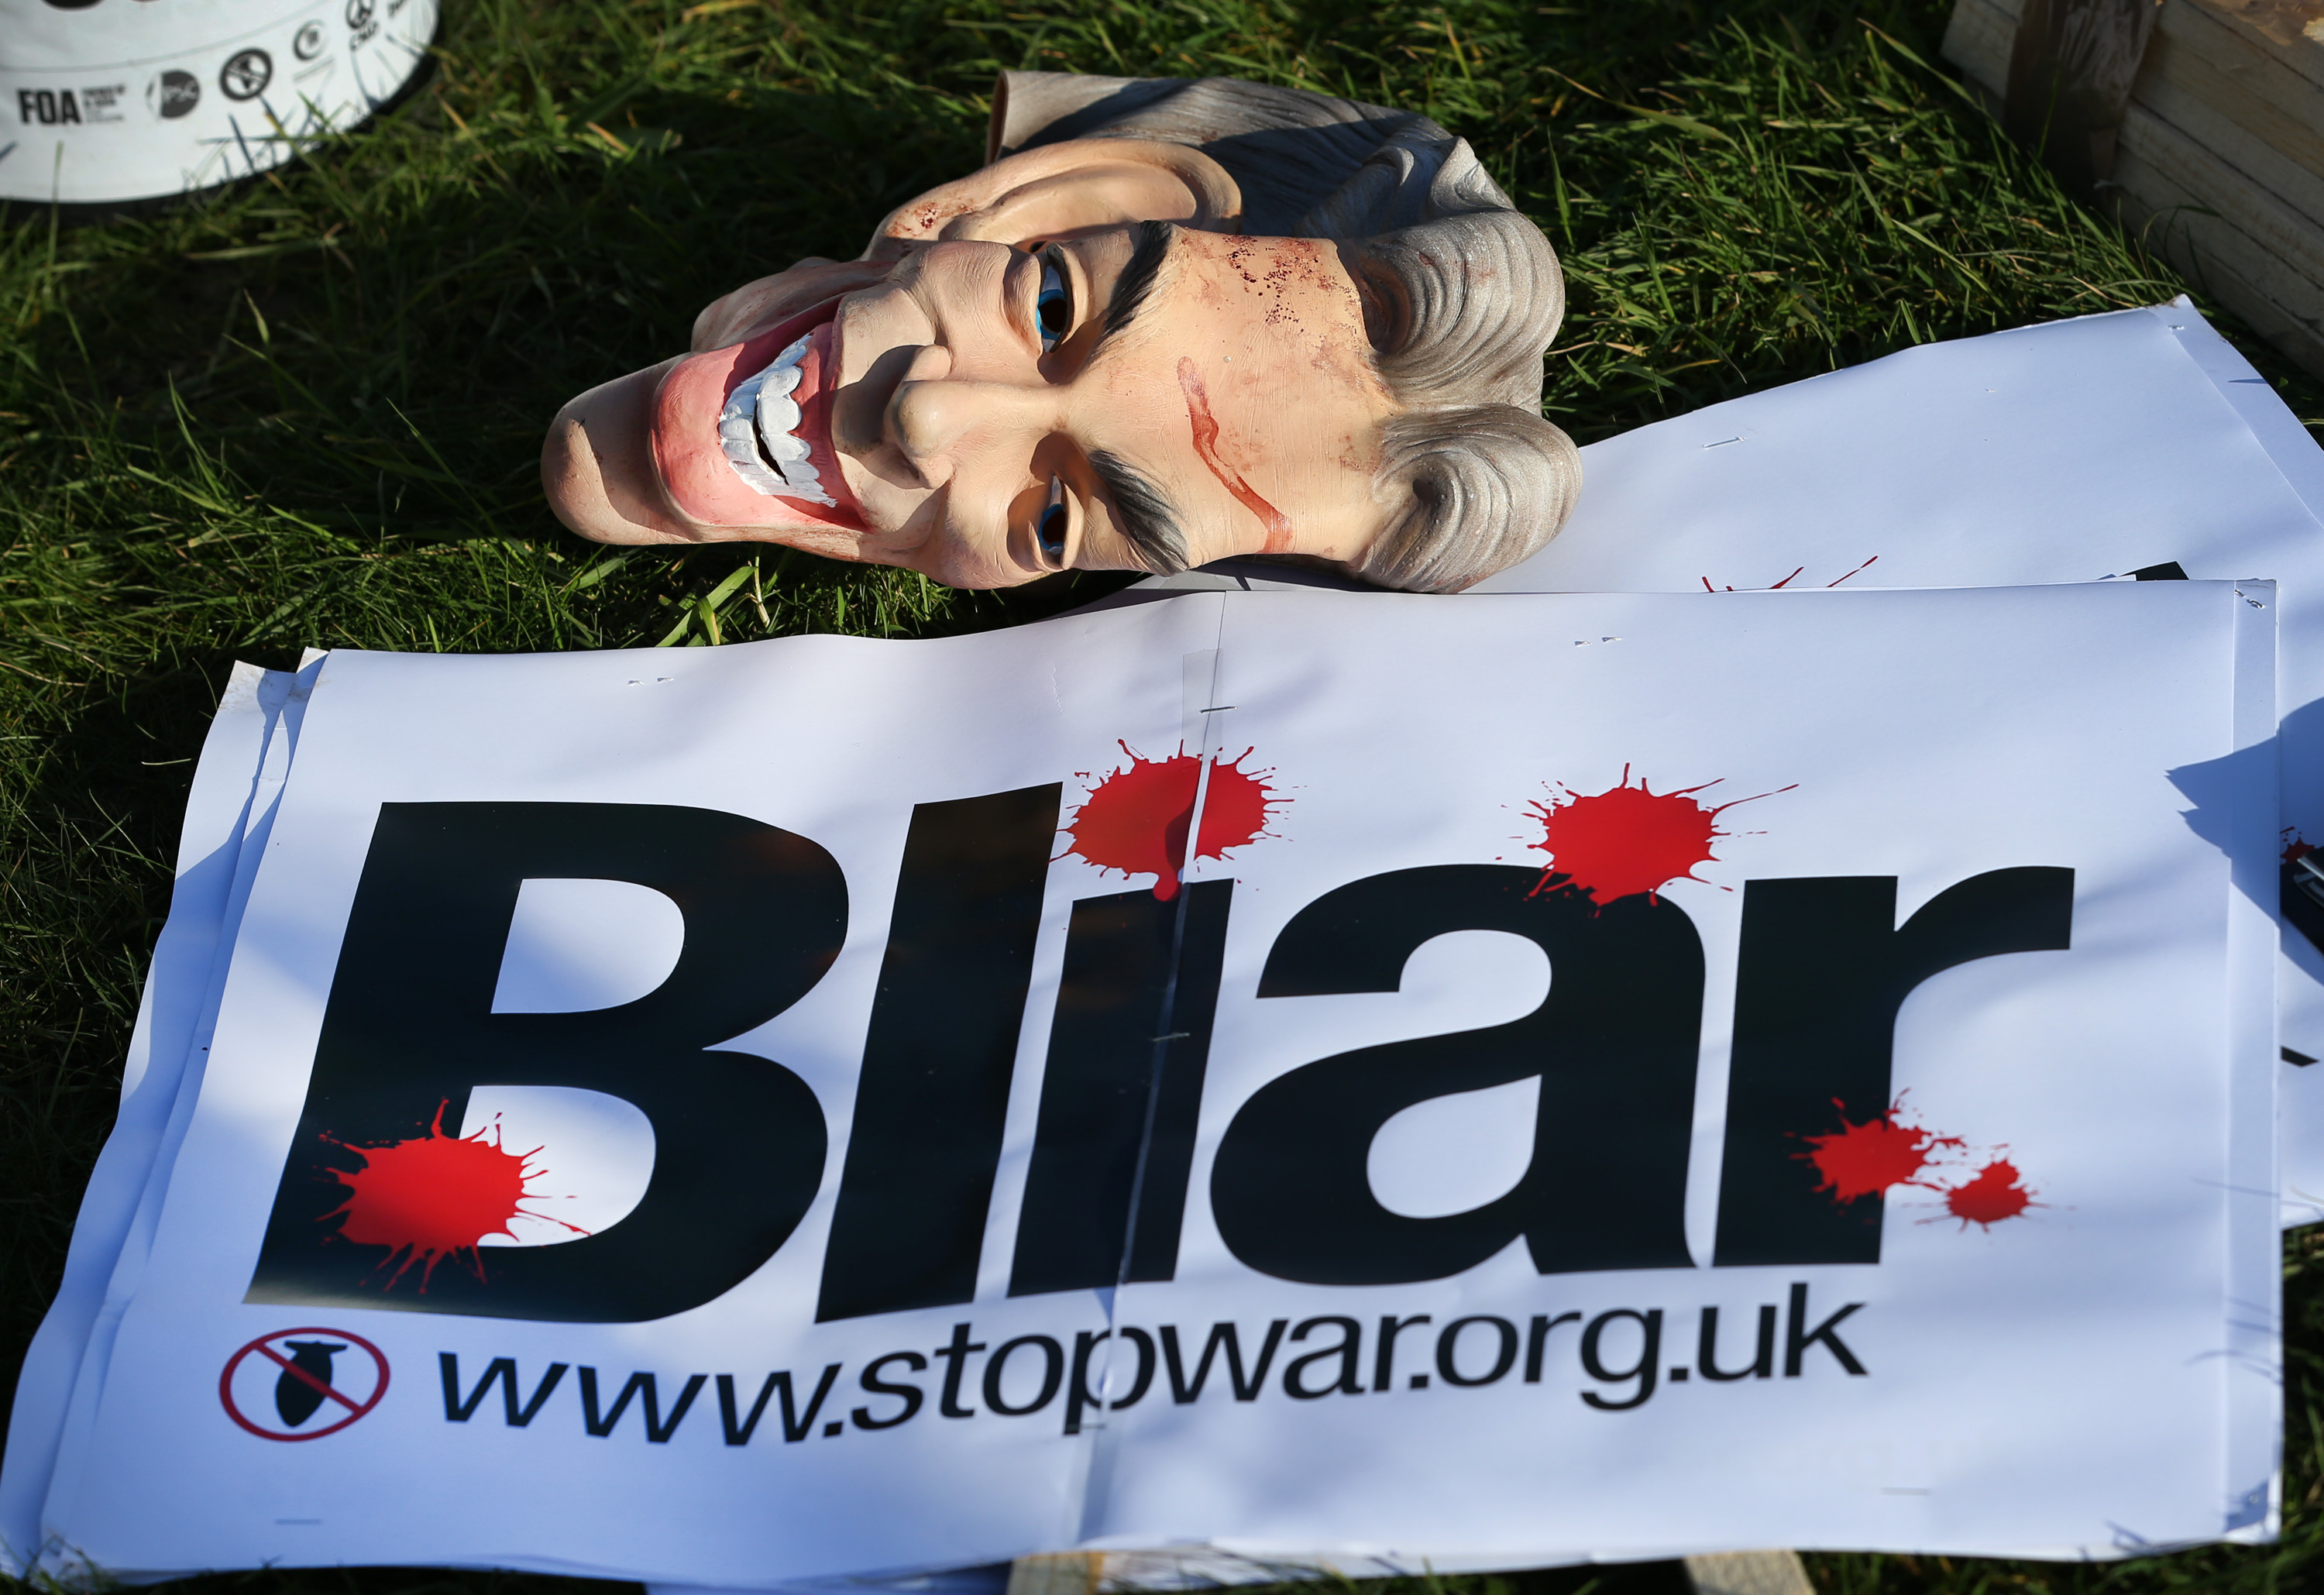 Protests Are Held Over The Delay In The Publication Of The Iraq War Inquiry